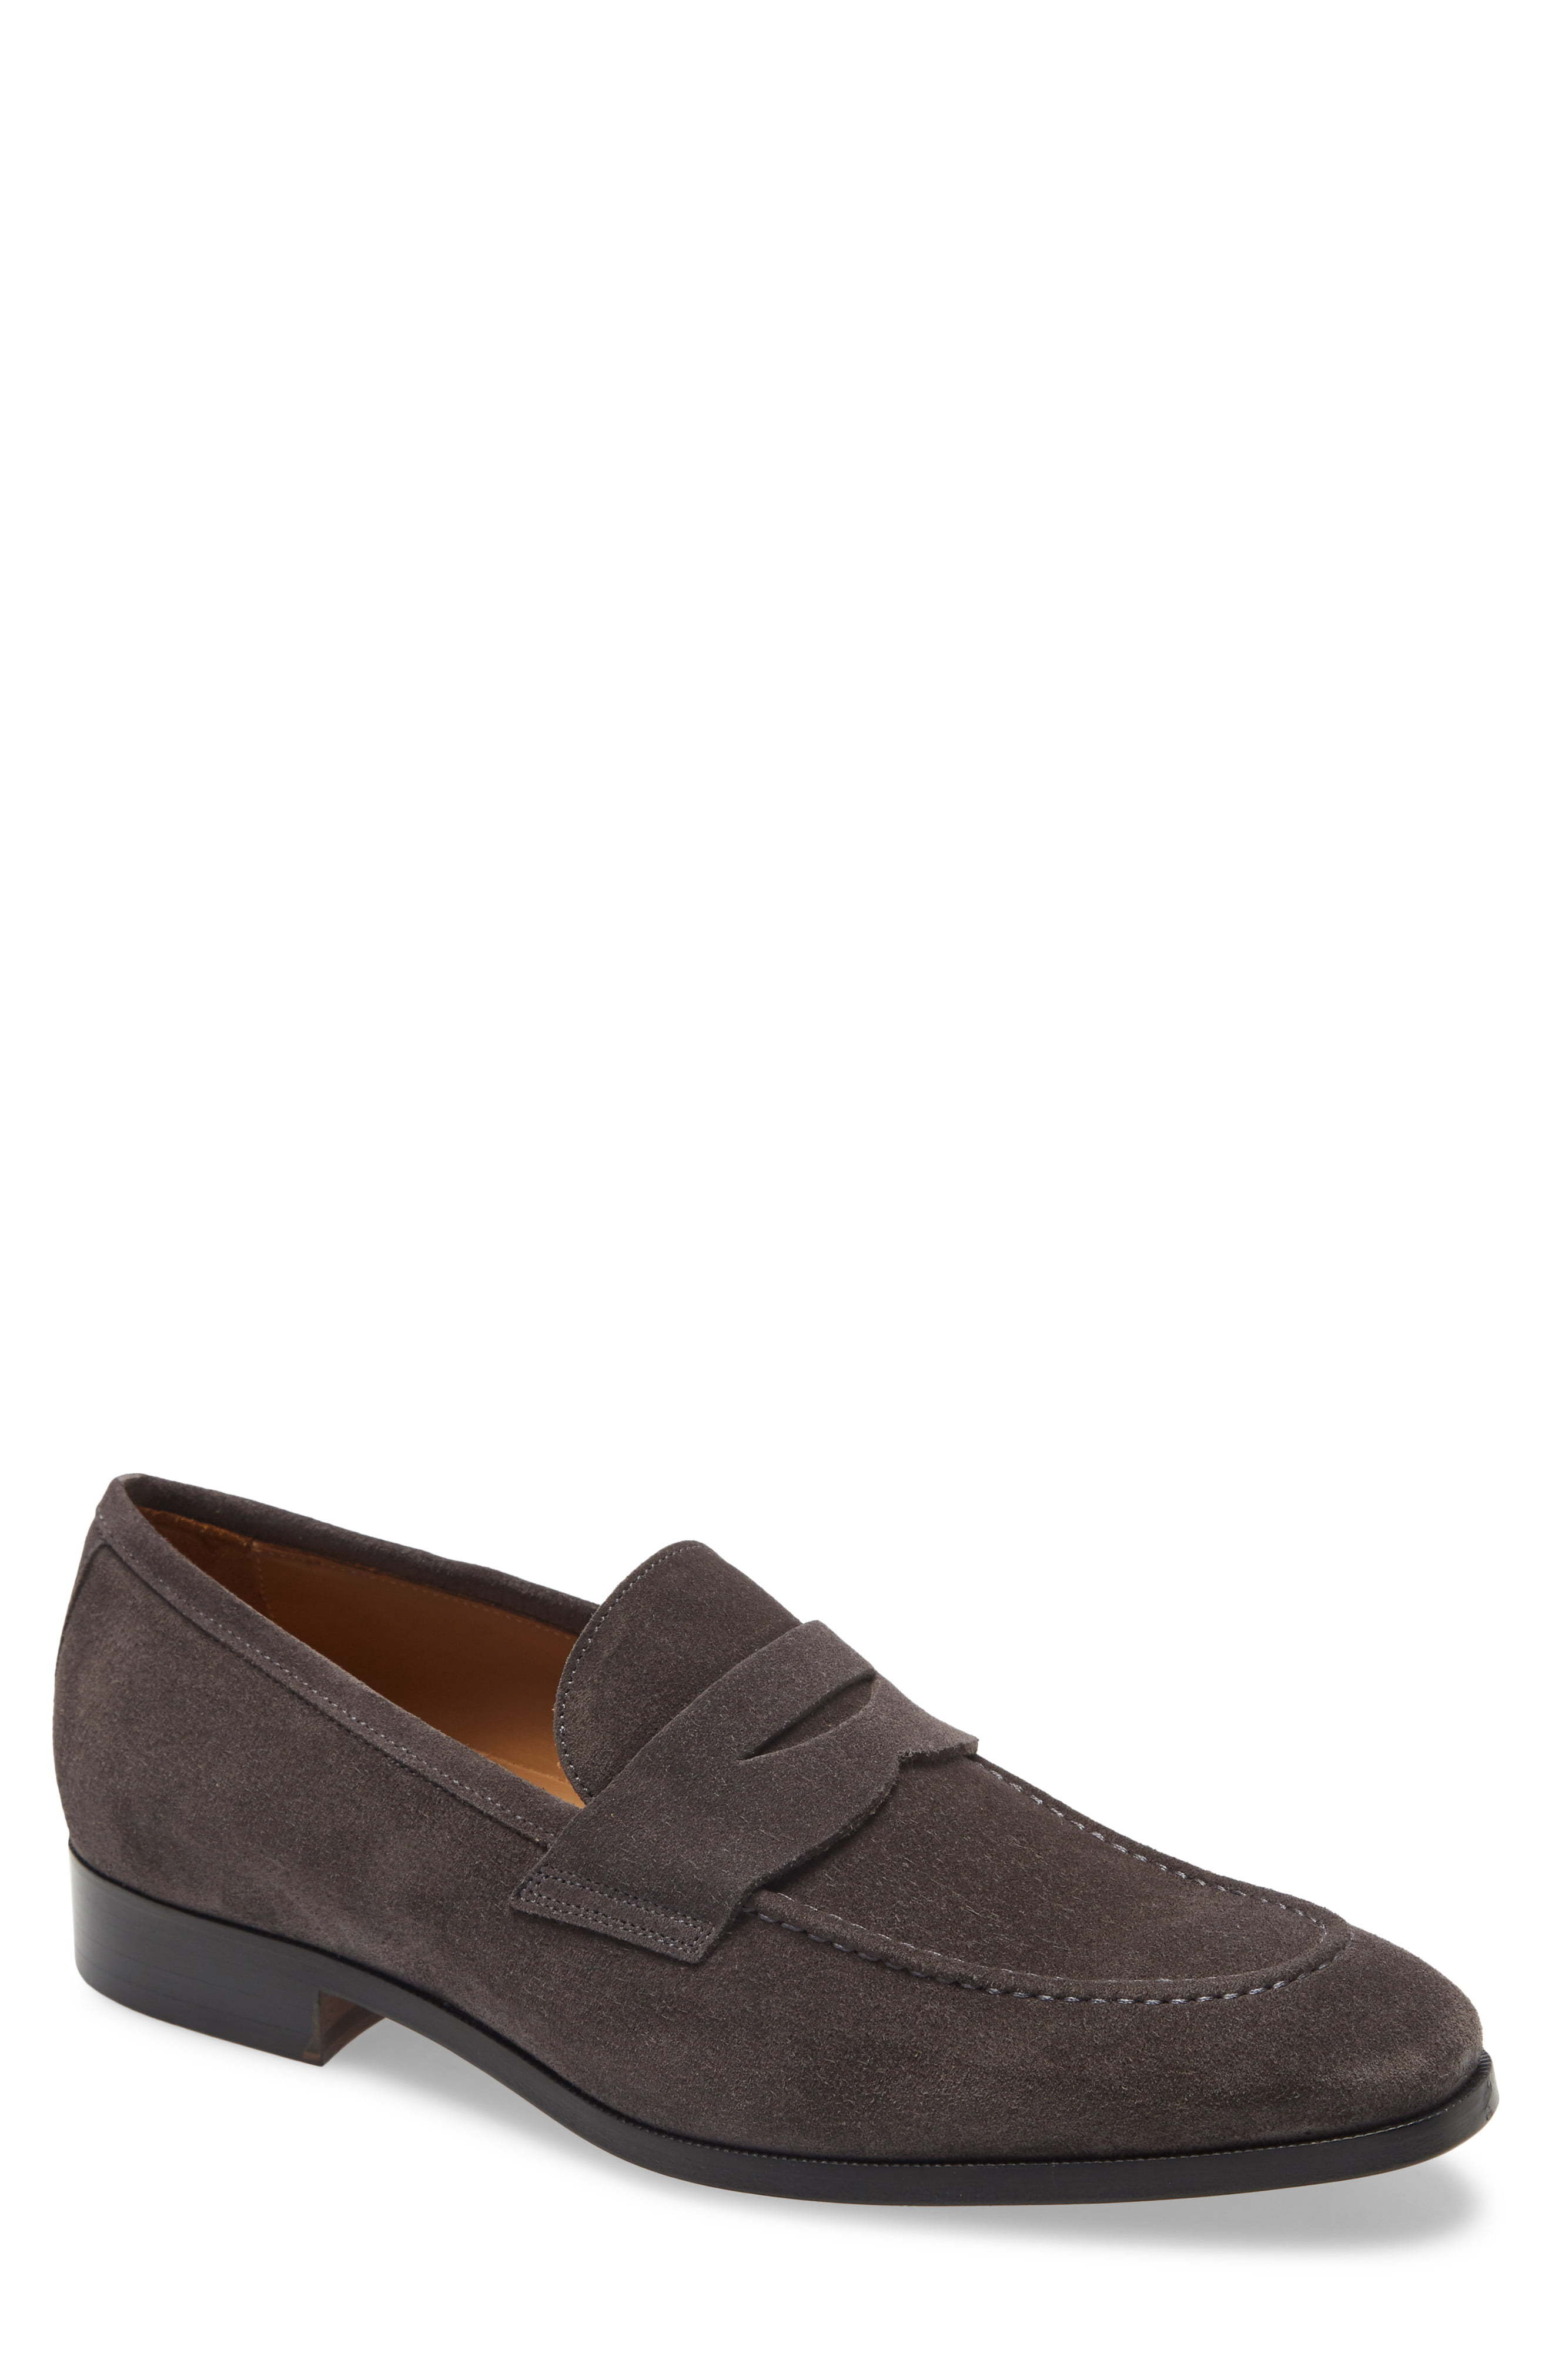 To Boot New York Tesoro Penny Loafer